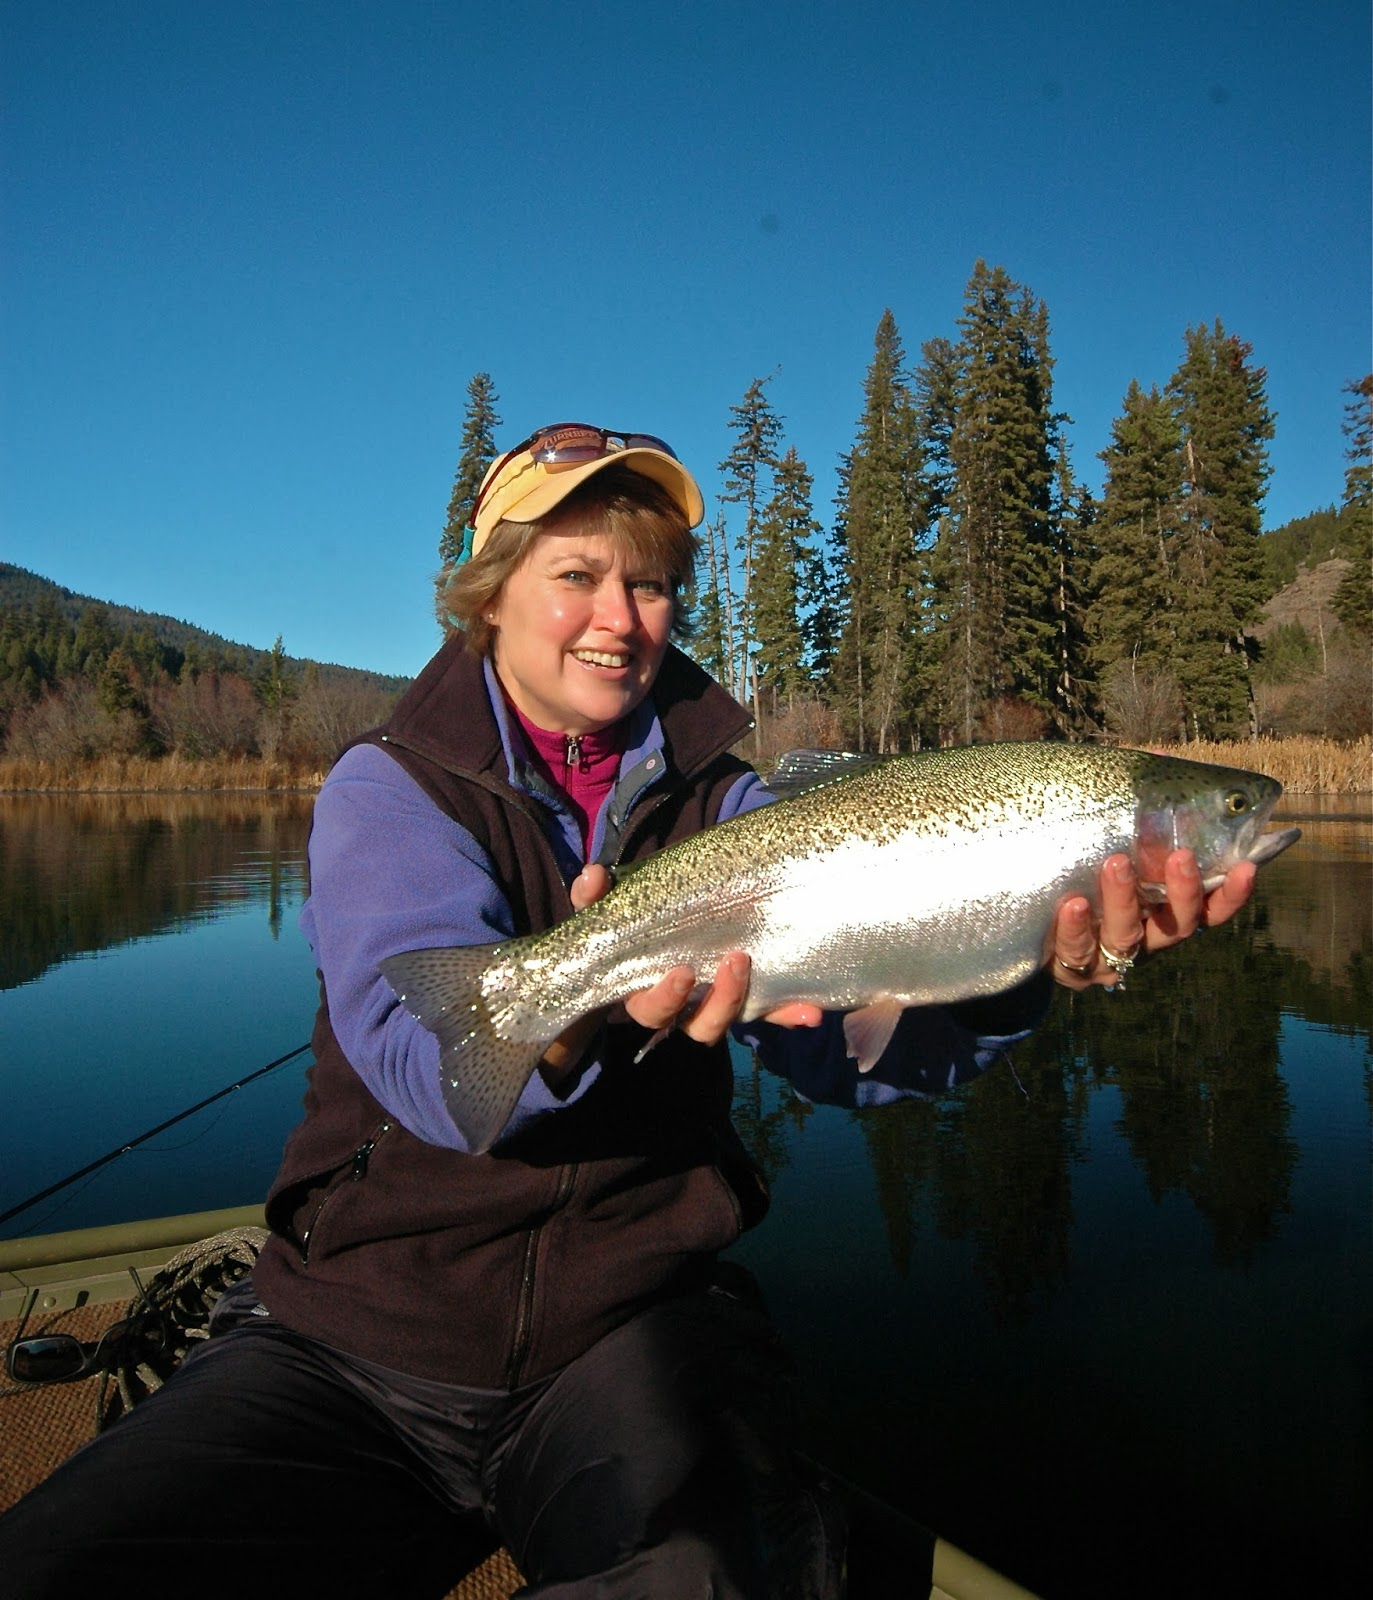 News from the lakes ranchlands 2014 fly fishing schools for The fishing school